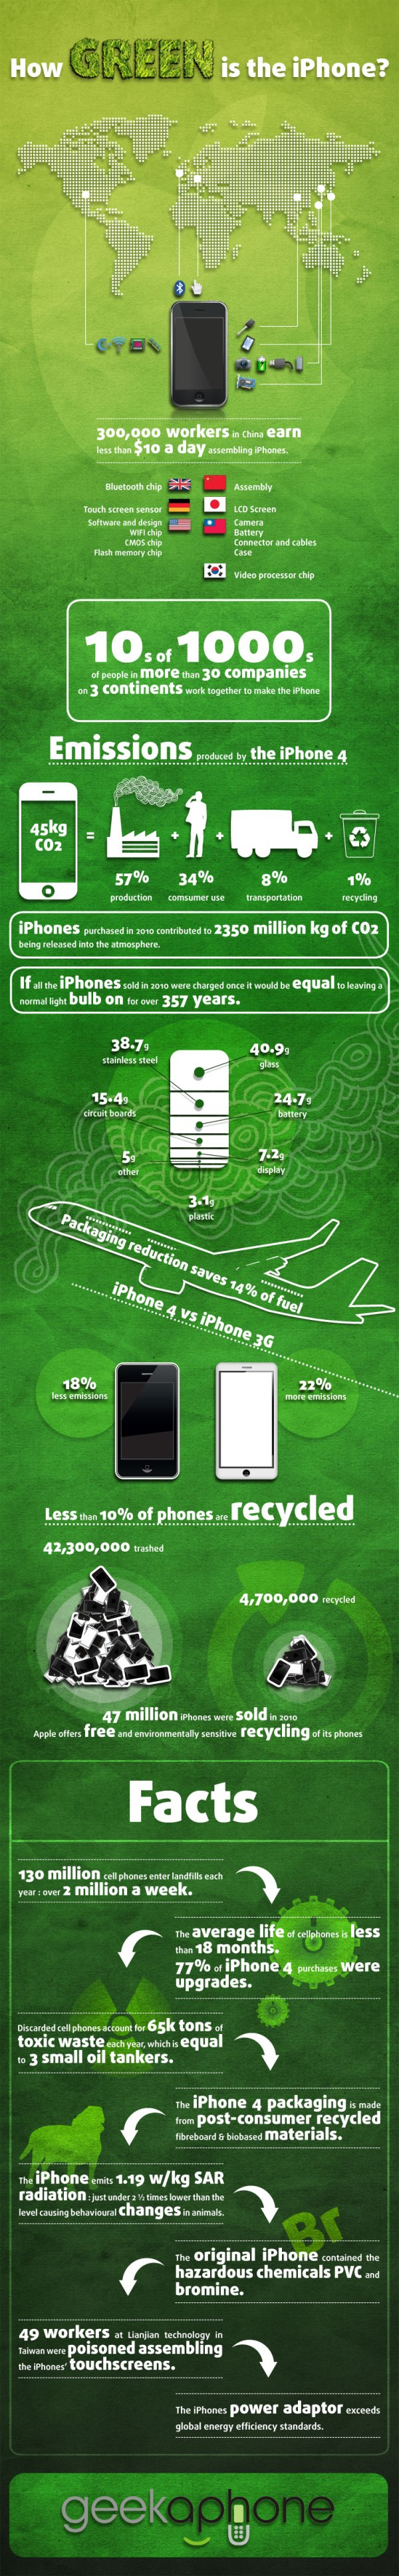 Howgreen is your iPhone infographic